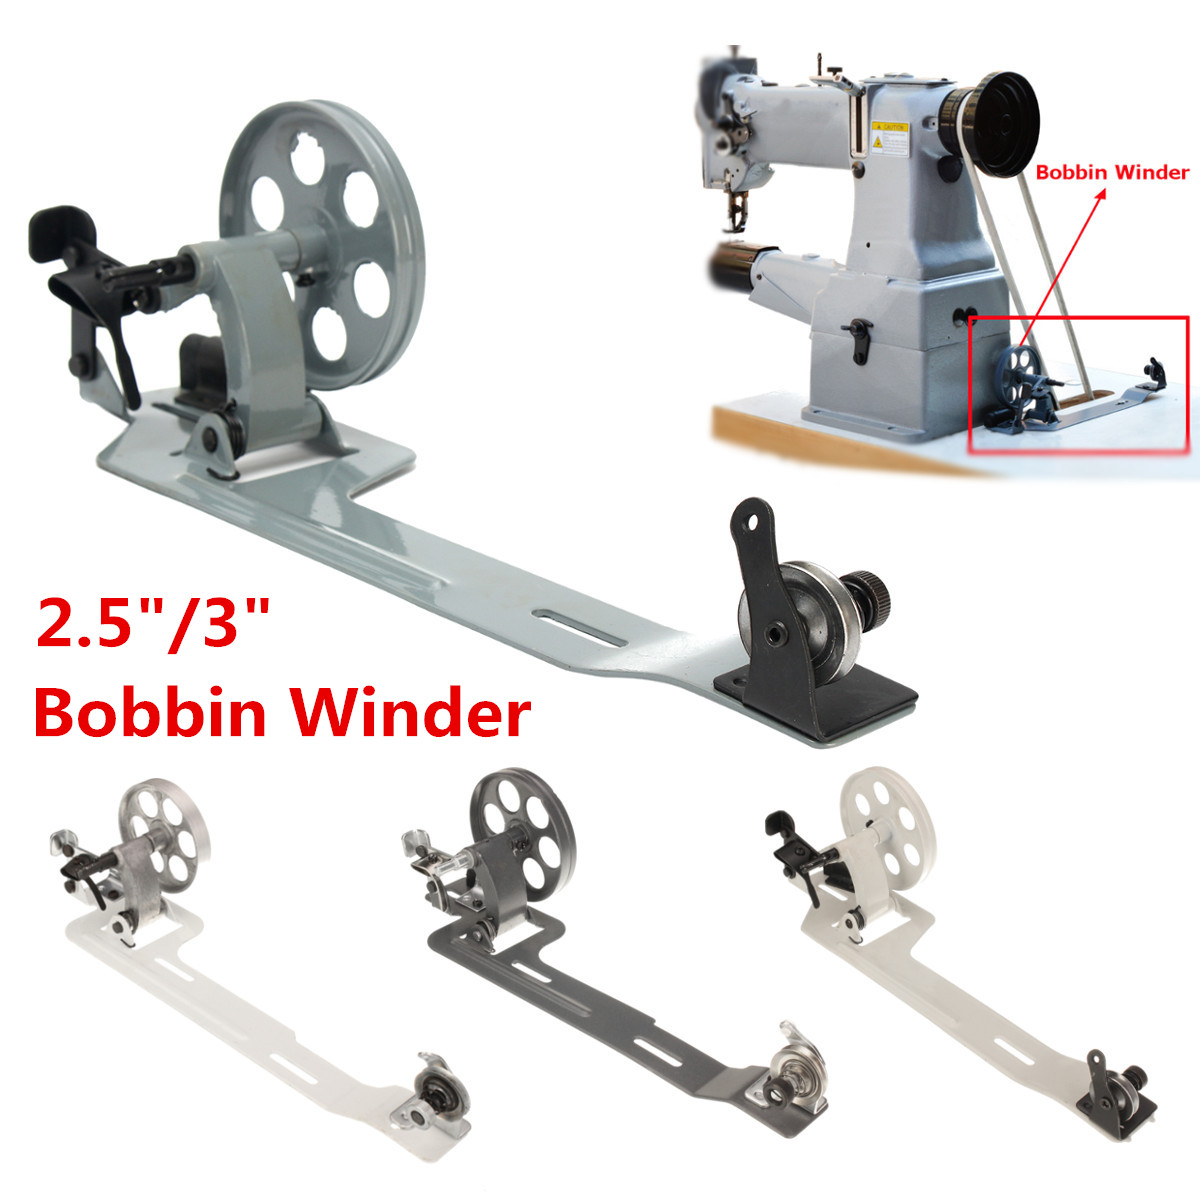 Where To Buy Bobbins For Brother Sewing Machines